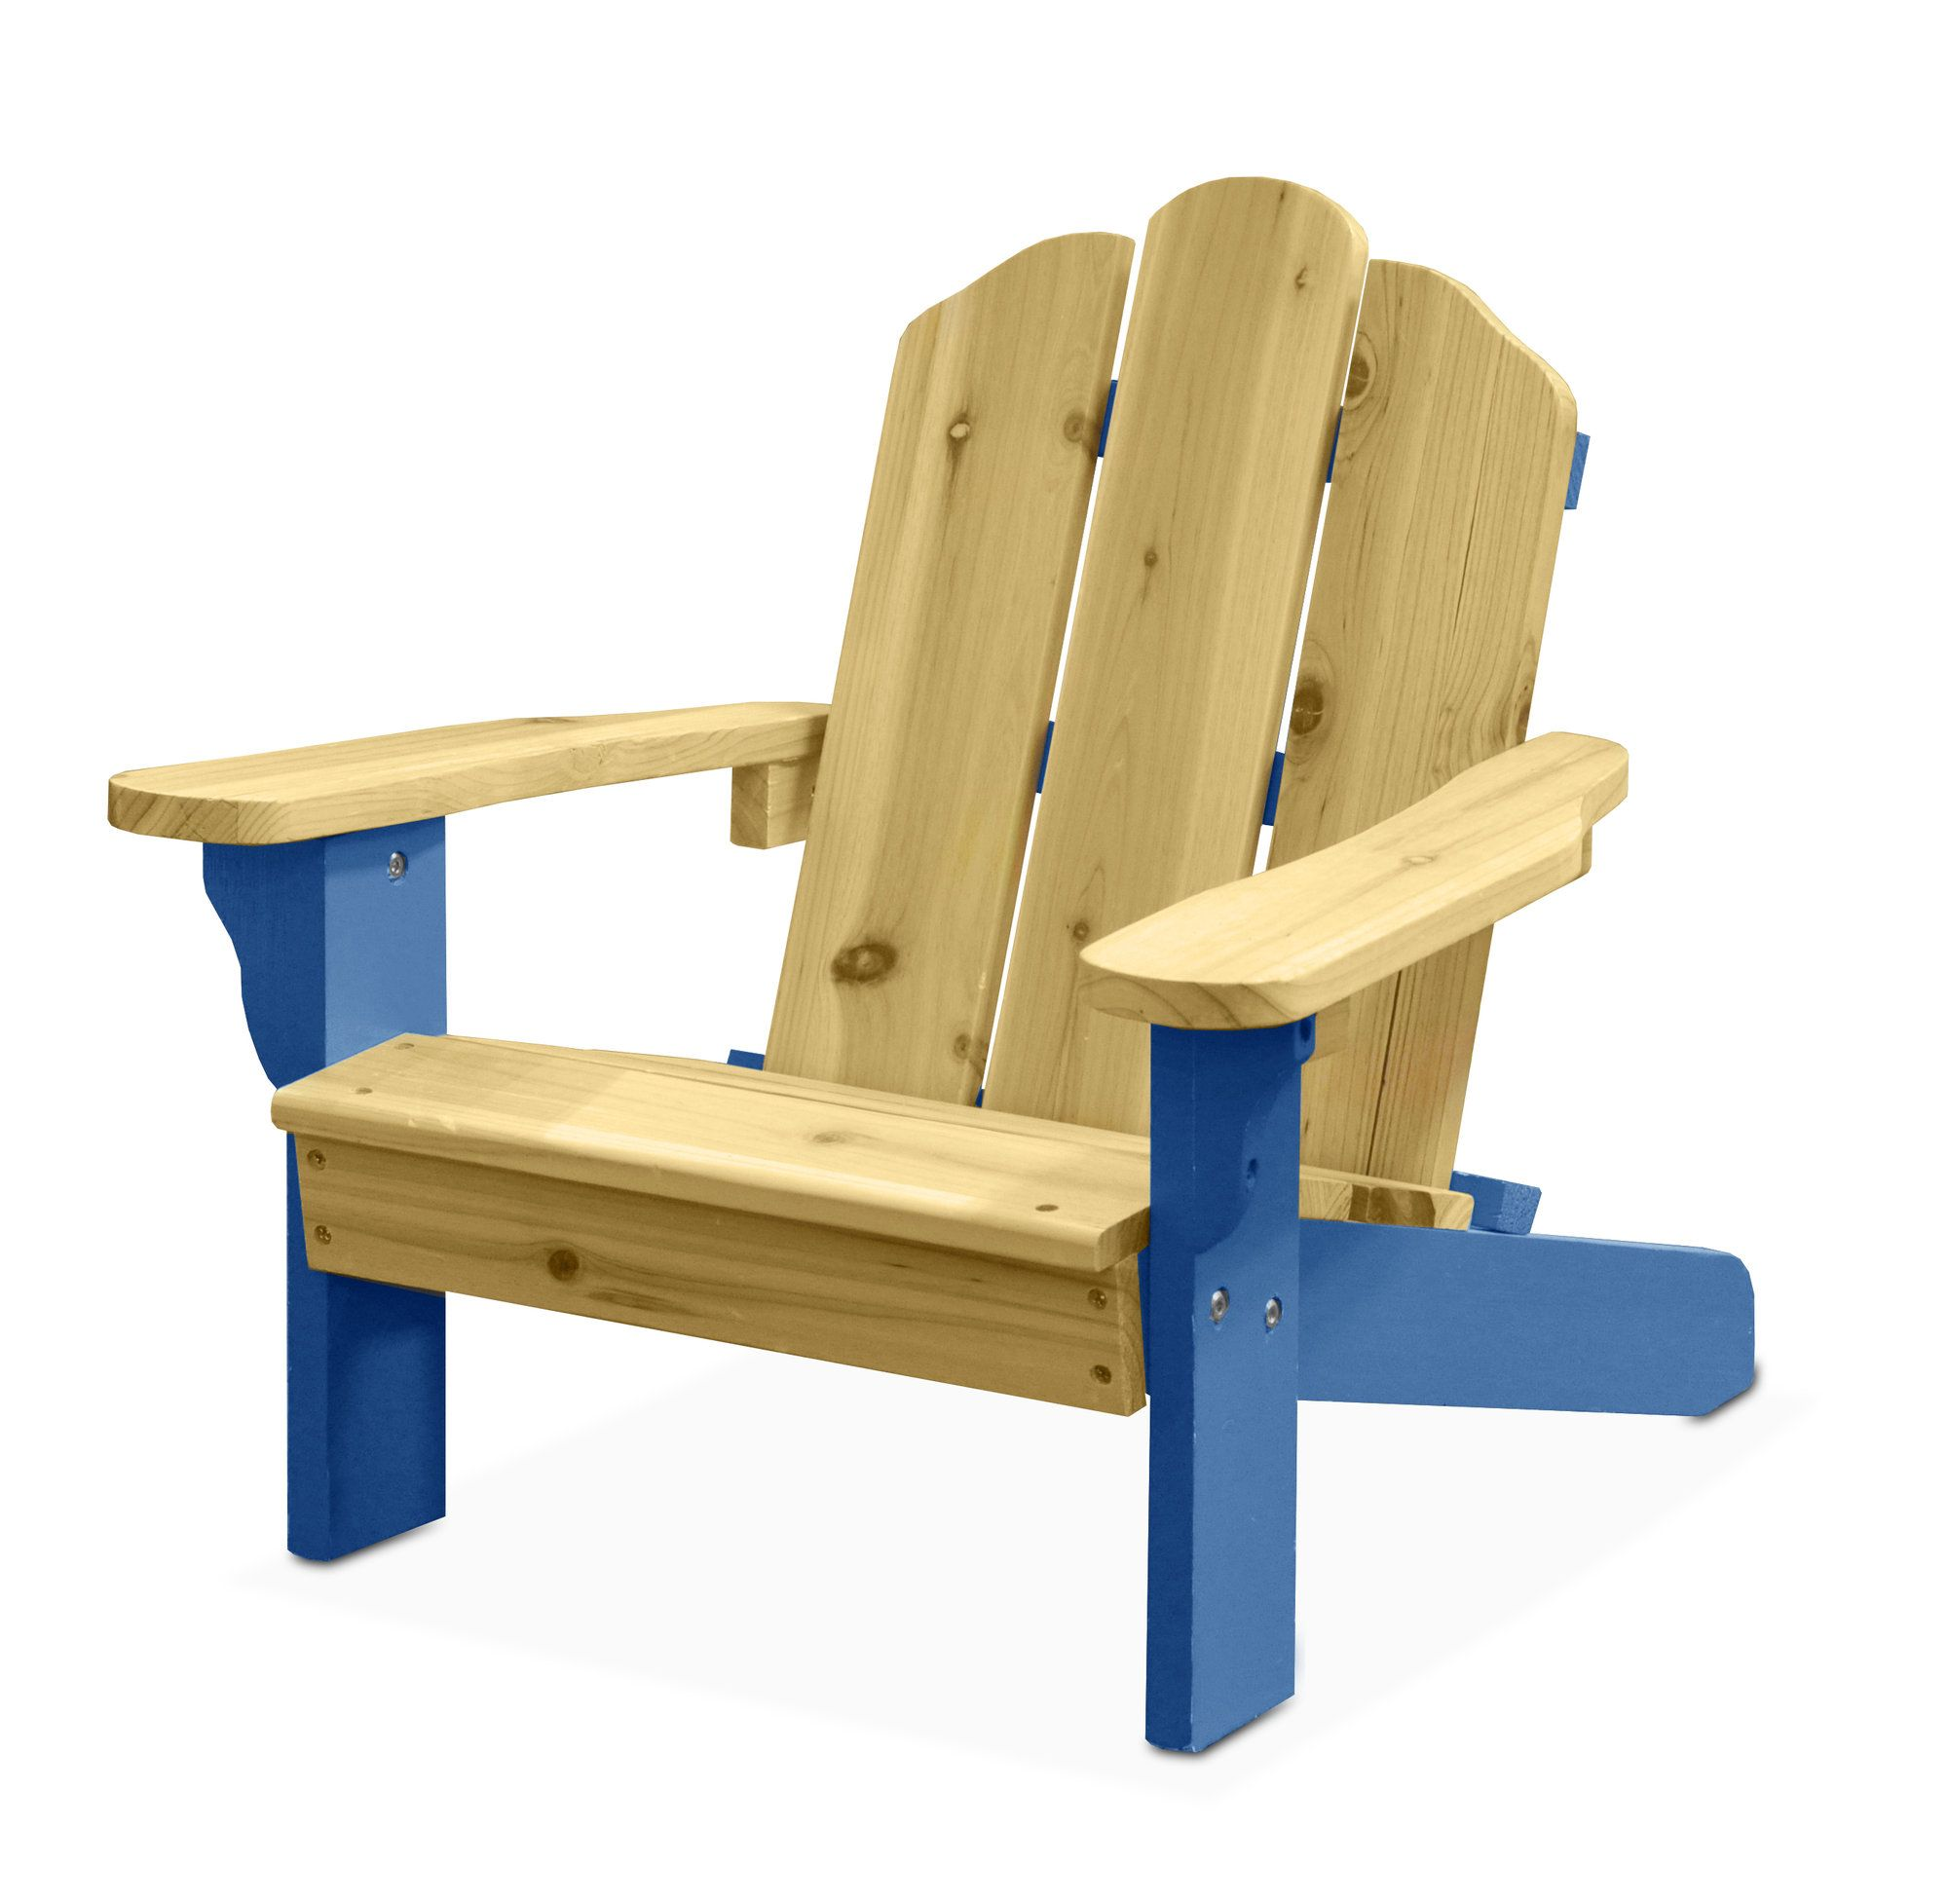 Garett kids two tone adirondack chair products pinterest products